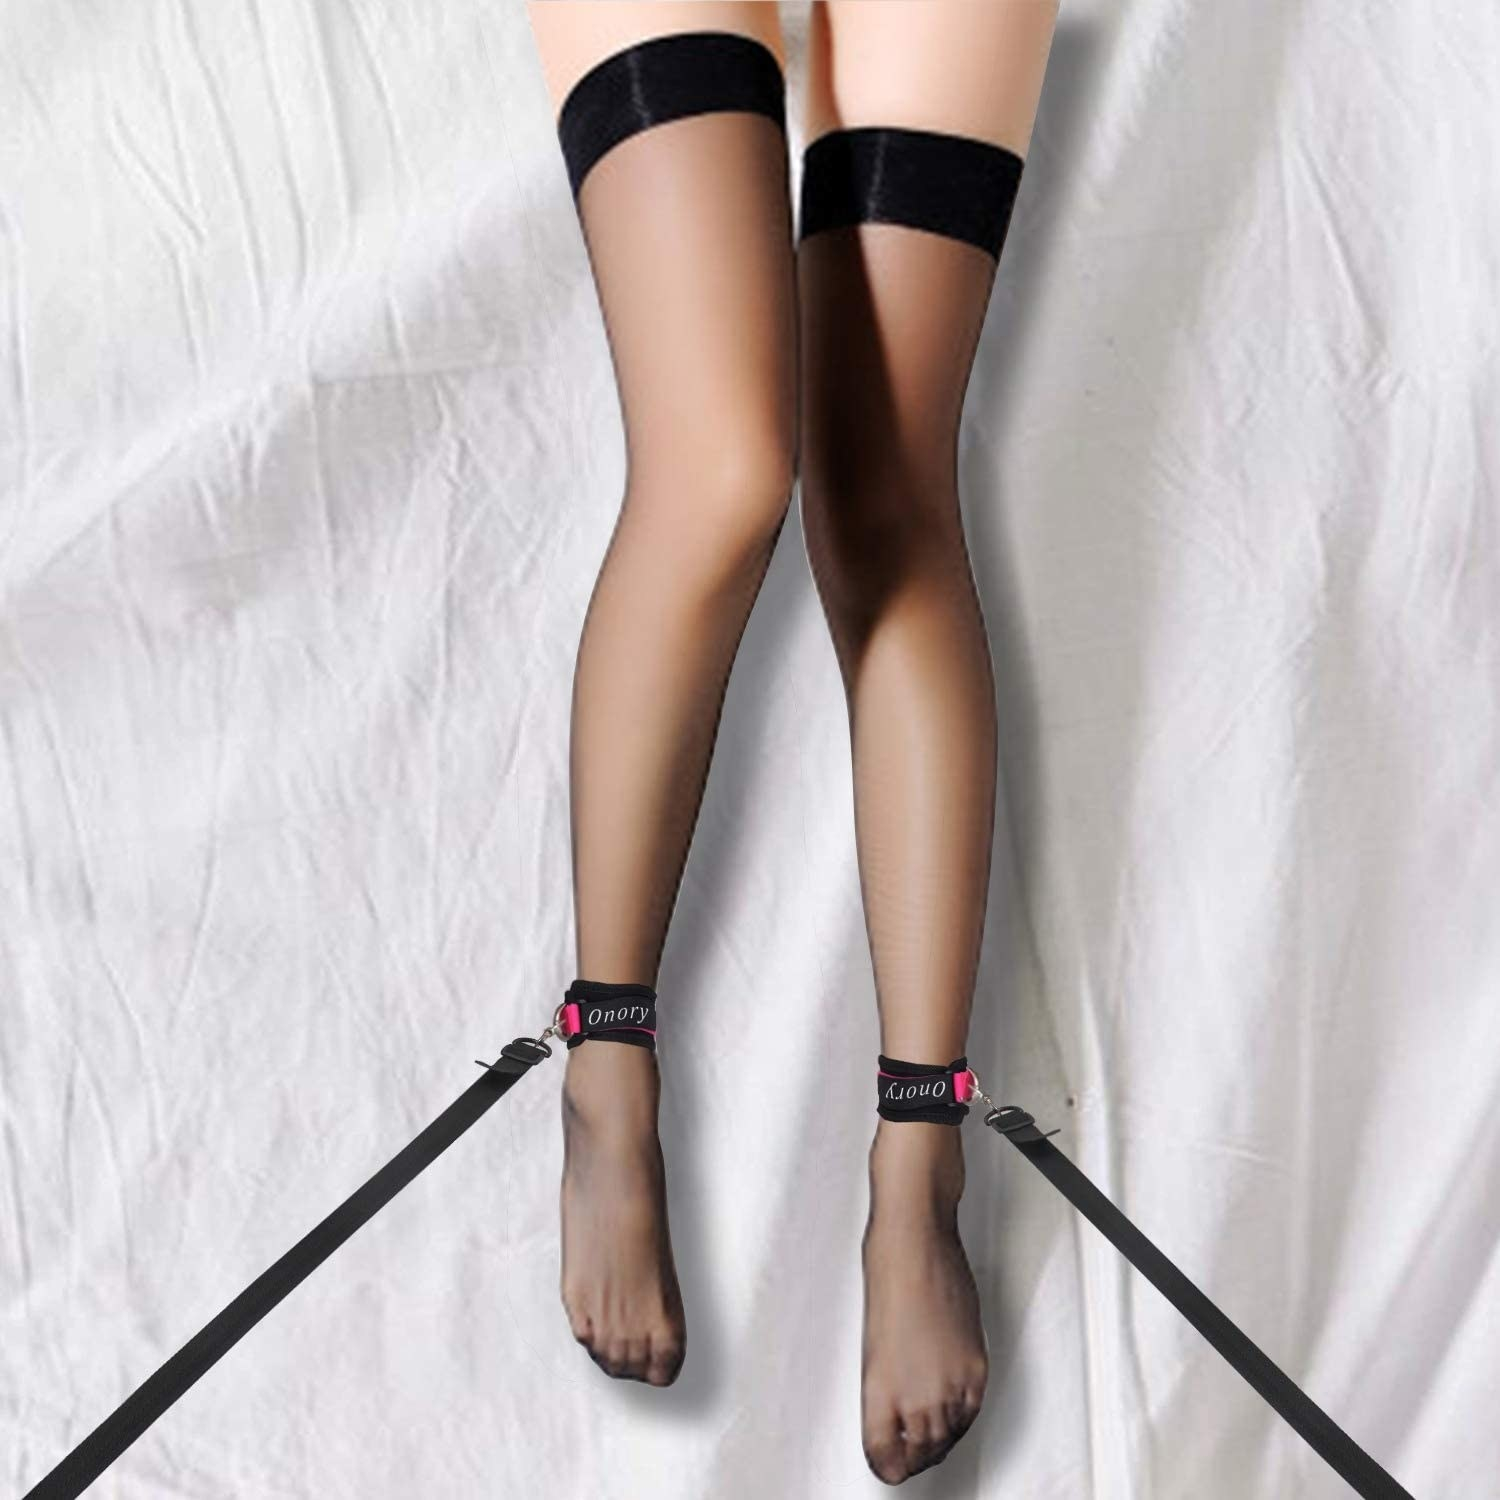 Black and pink ankle restraints on ankles